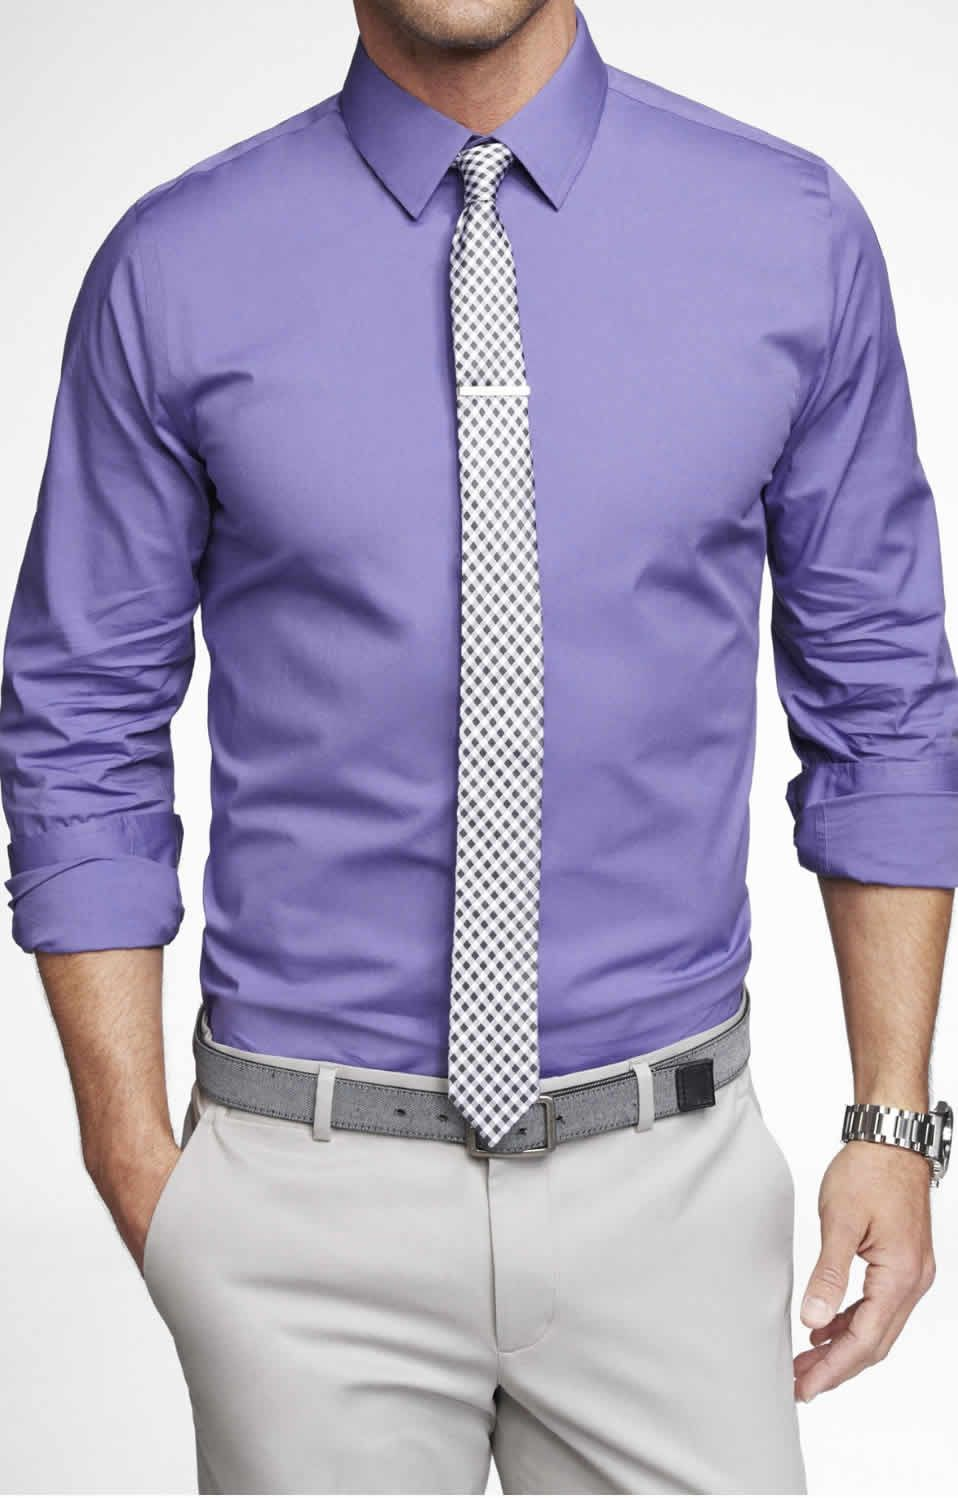 Best Bespoke Men S Suiting Brand Luxury Men S Clothing Formal Shirts For Men Mens Shirts Mens Outfits [ 1498 x 958 Pixel ]